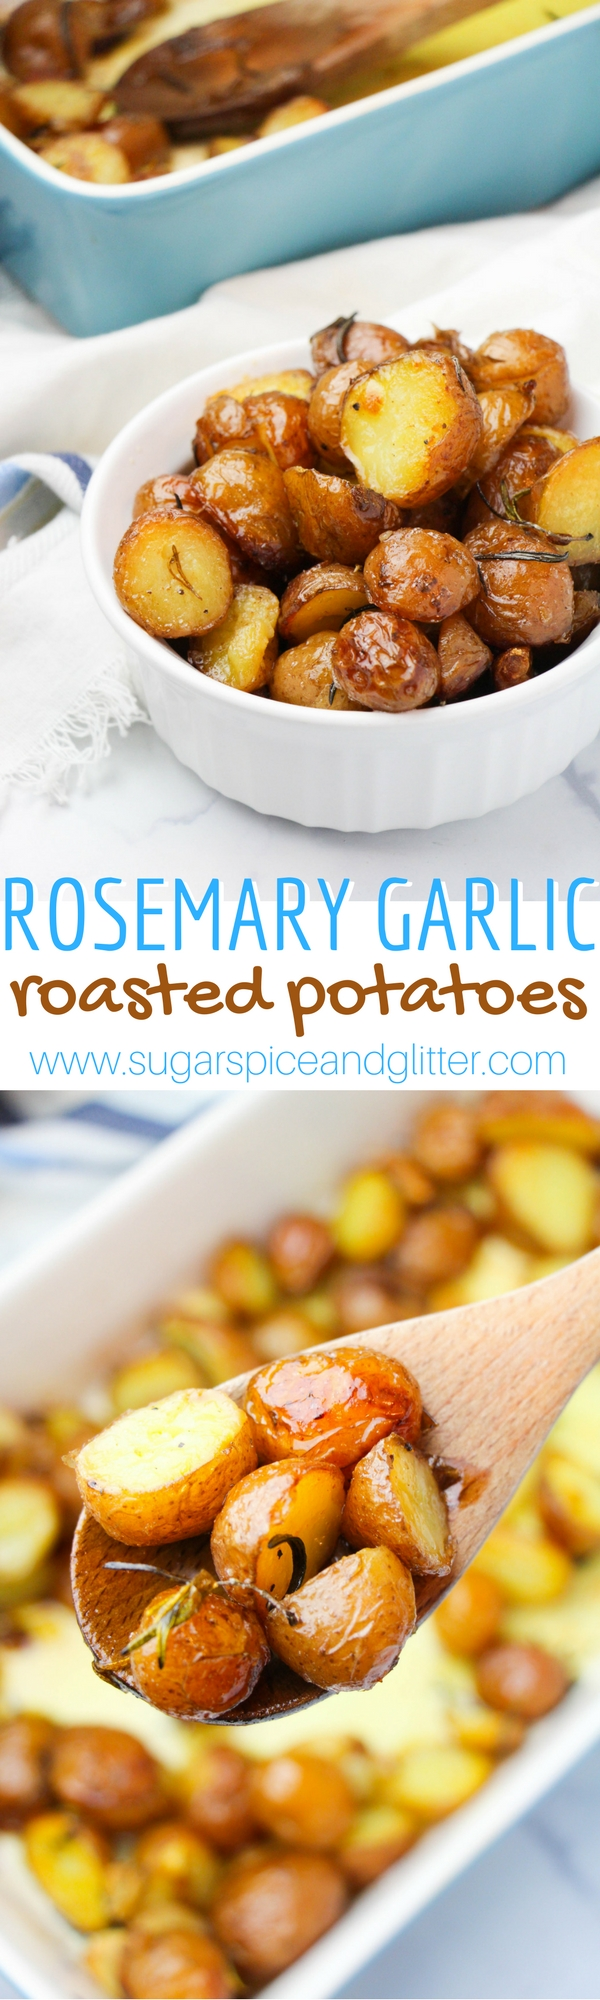 A delicious and easy roasted potato side dish, these Rosemary Garlic Roasted Potatoes are one of our families favorite ways to enjoy the king of all root vegetables